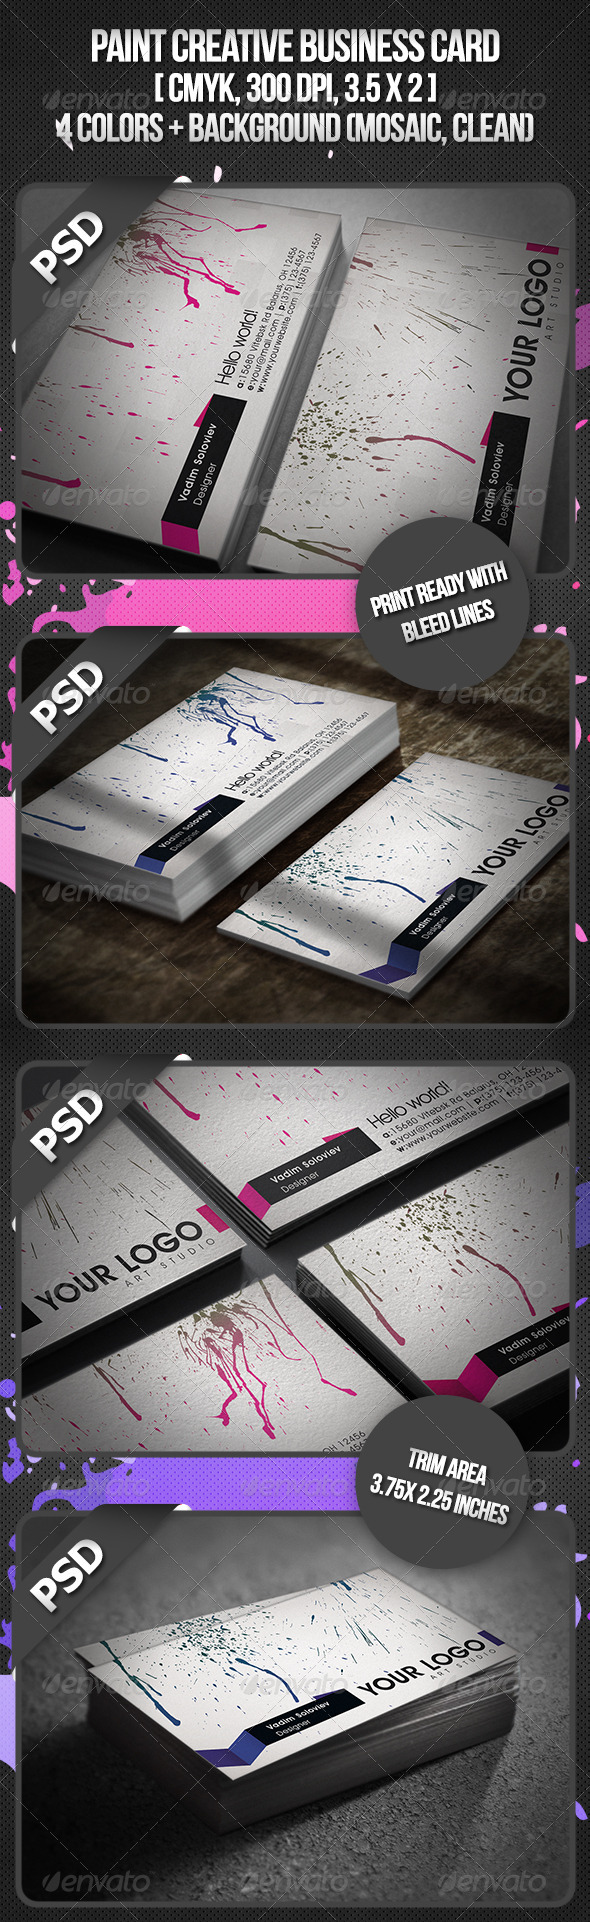 Paint Creative Business Card - Creative Business Cards